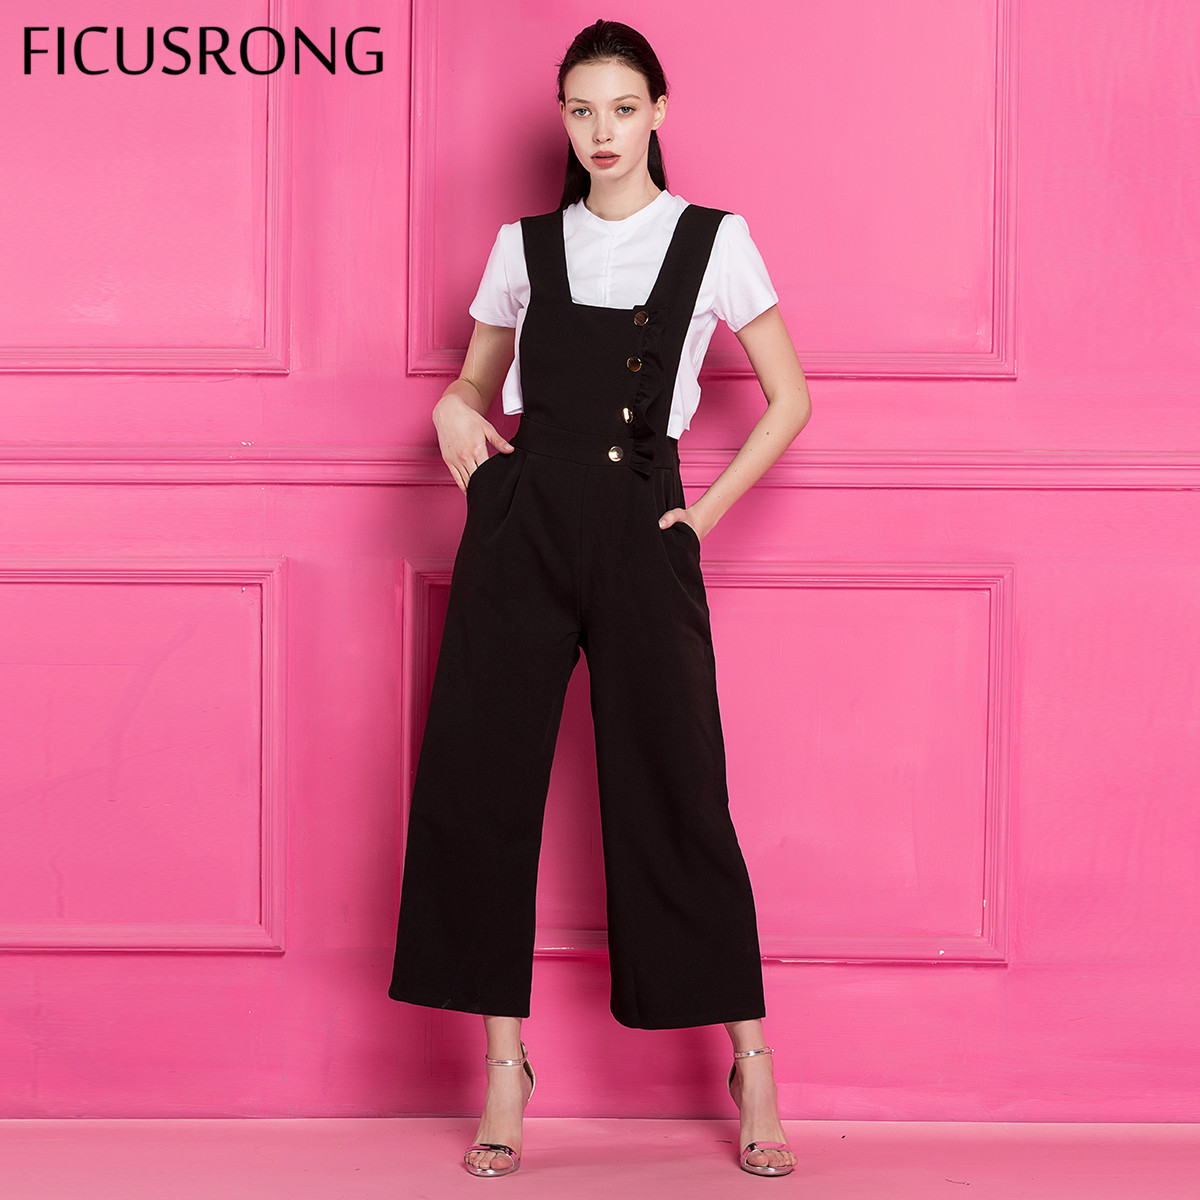 FICUSRONG 2018 Women Jumpsuit Layered Overalls Spring Autumn Black Buttons Strap Ripped Pockets Ankle Length Pants Jumpsuit